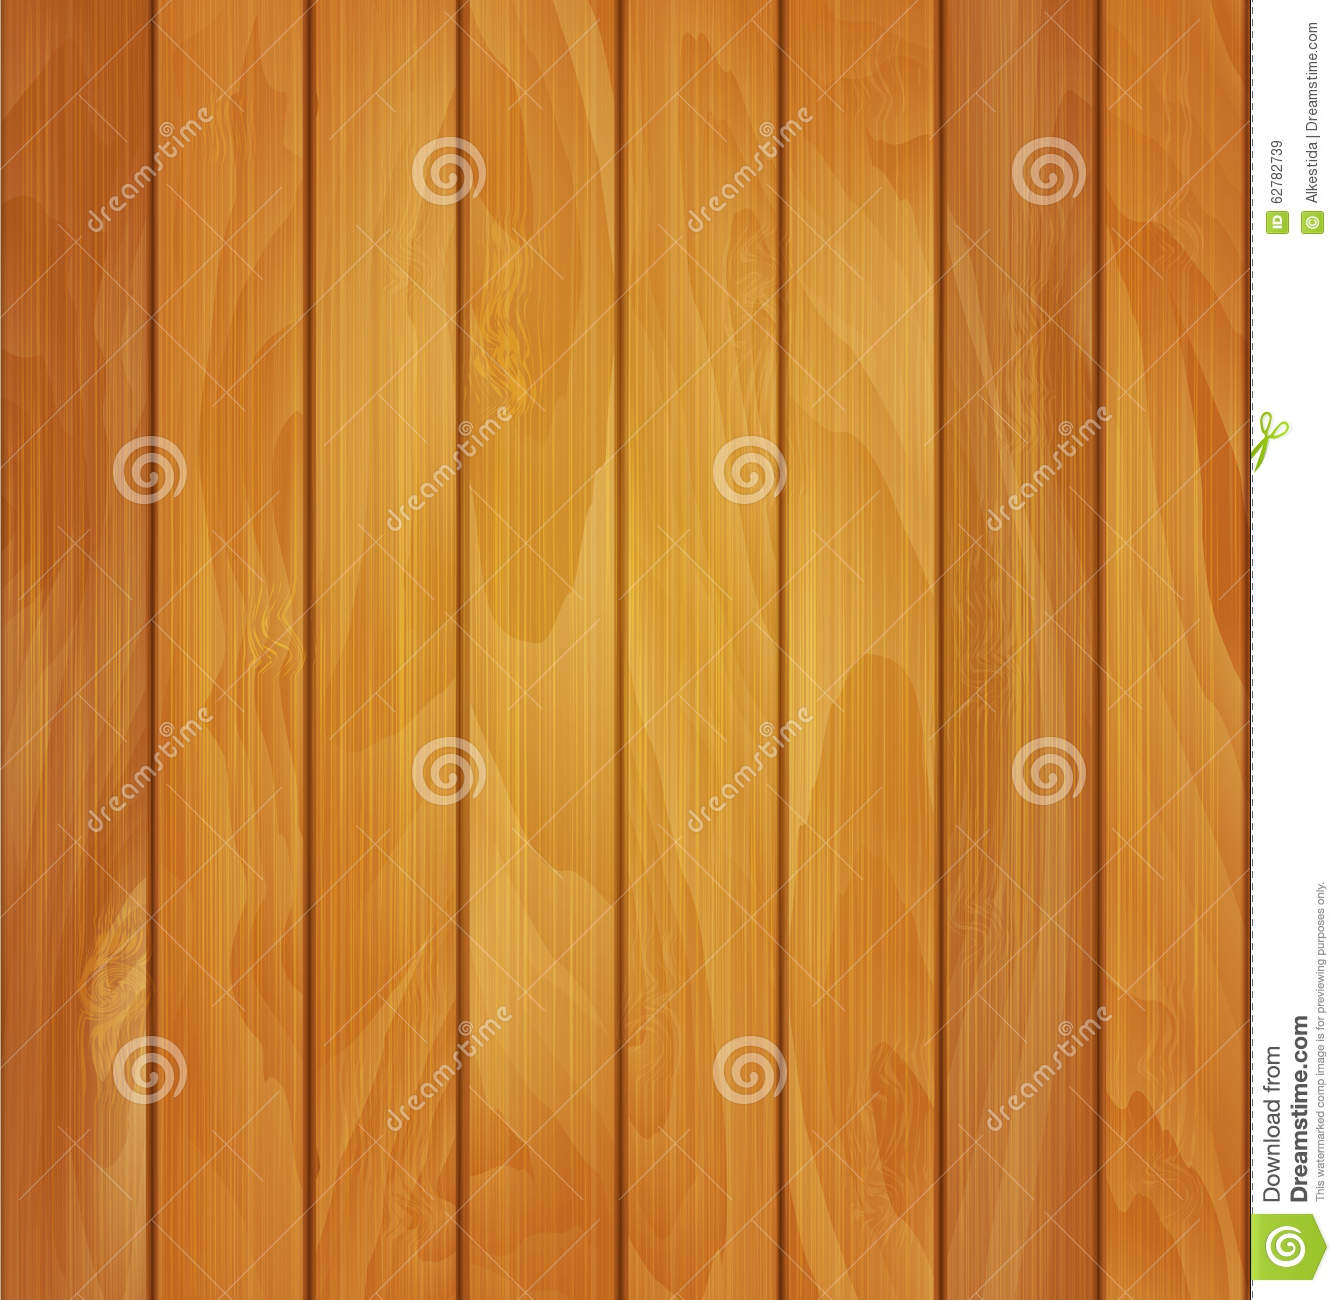 Light Wood Planks ~ Vector wood background texture of light brown wooden